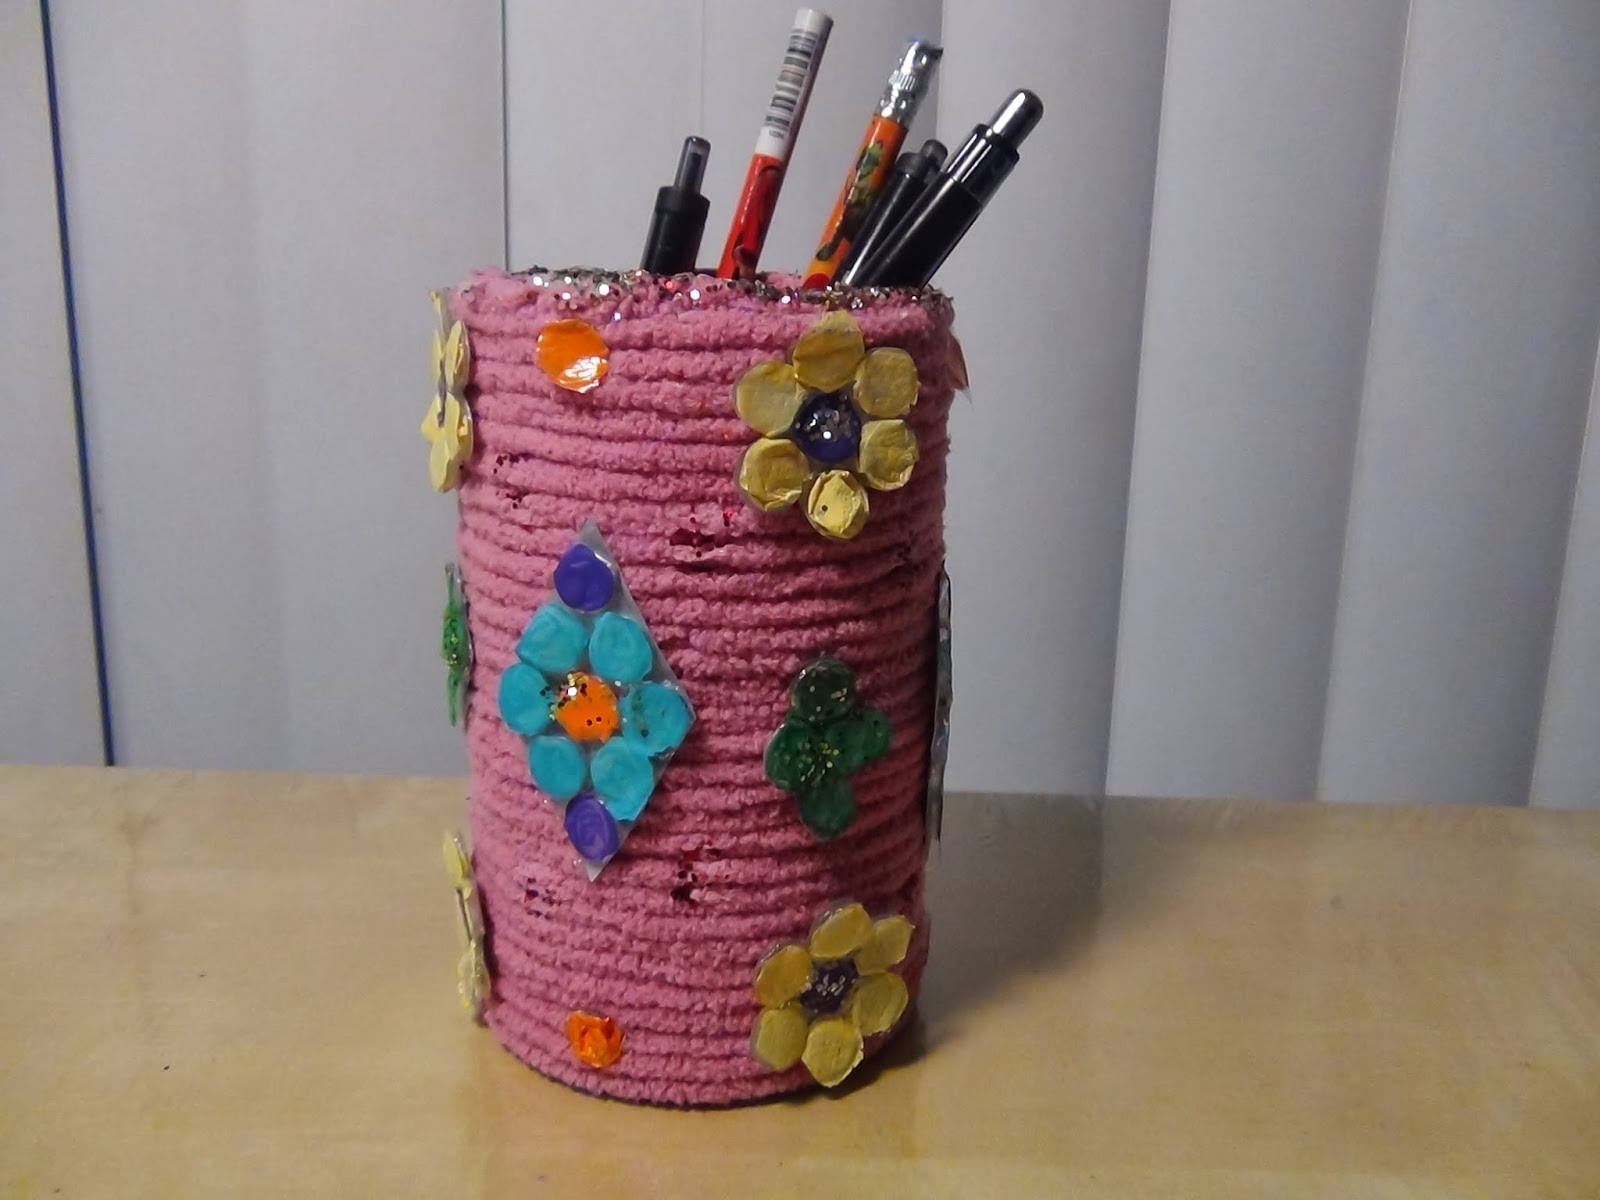 Creative DIY Crafts From Waste Materials